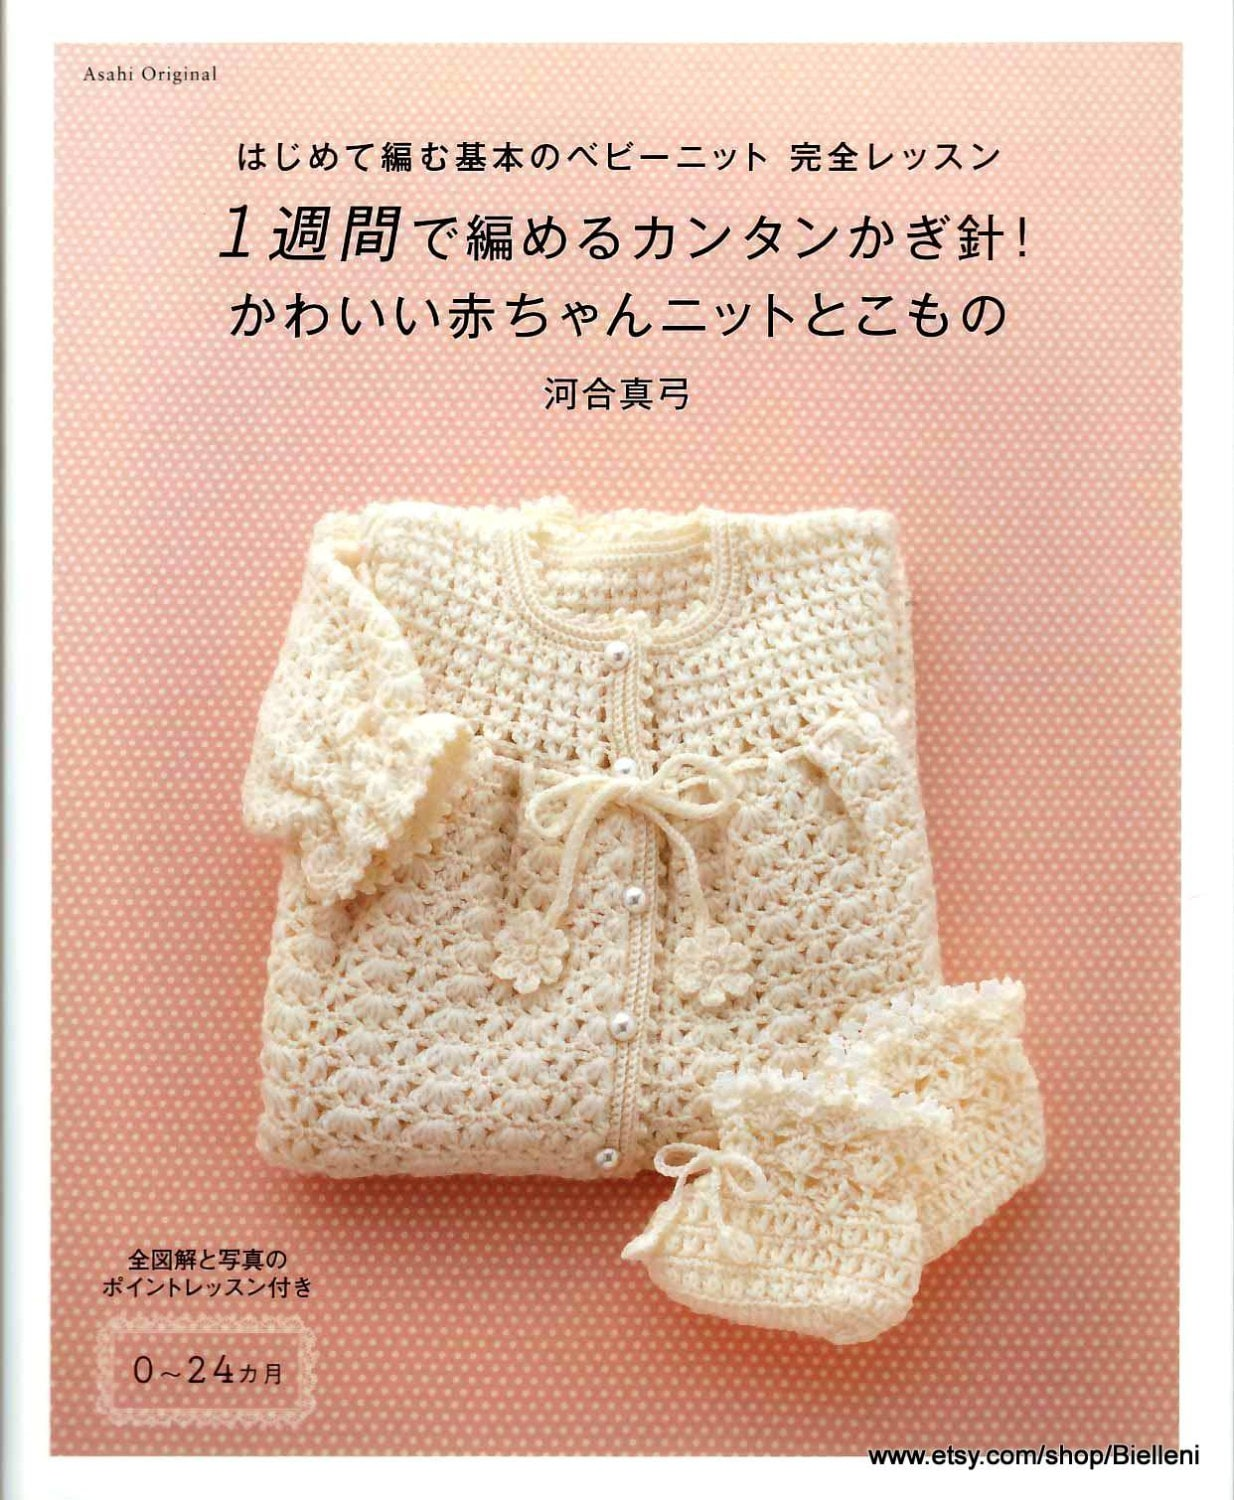 Japanese Crochet Baby Dress Pattern : Crochet Baby Clothes Japanese Crochet Pattern CRO17 Crochet